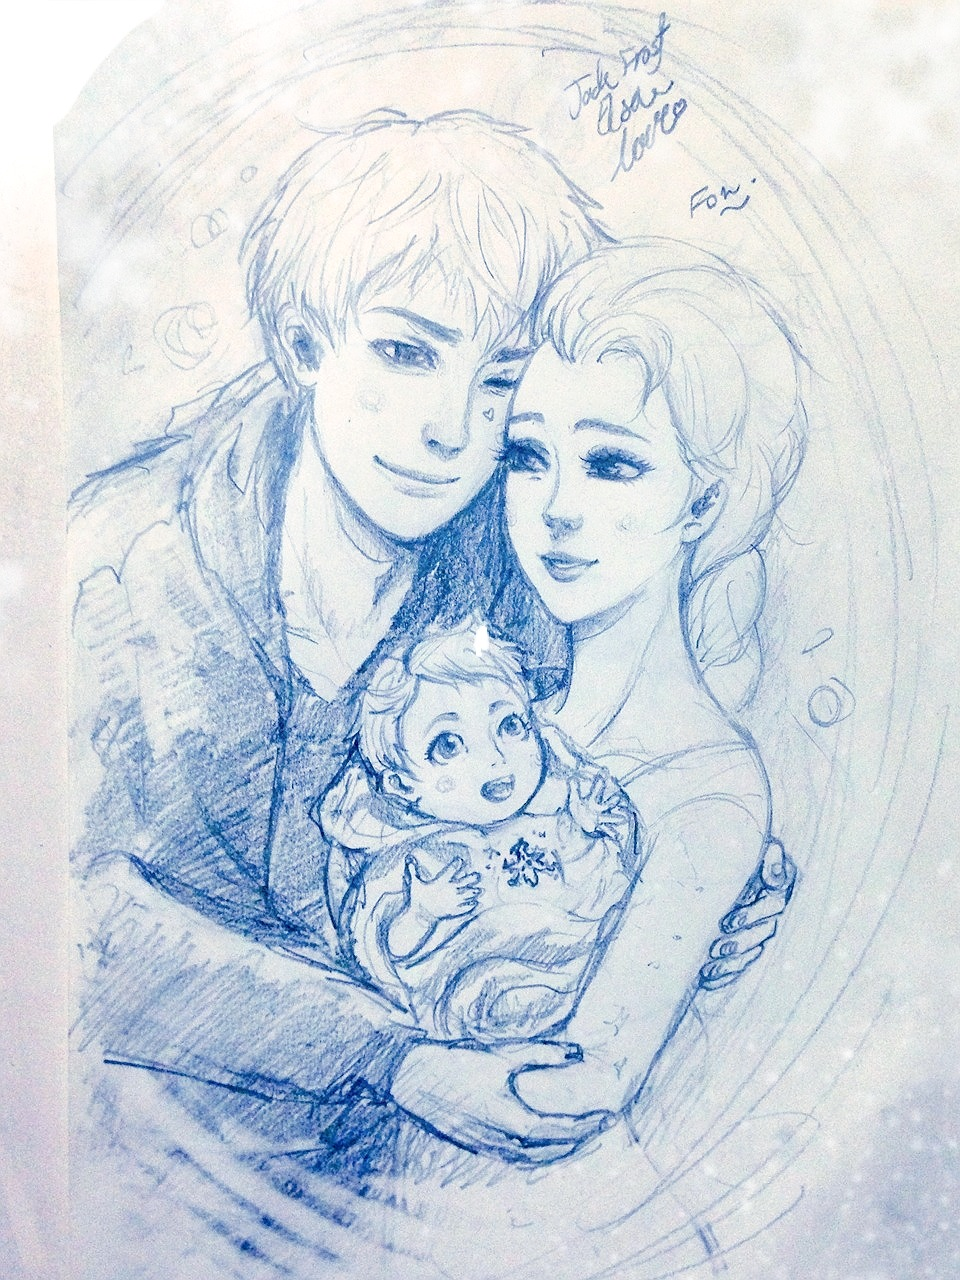 Jack frost Elsa and their little love by Snowcupid on DeviantArt